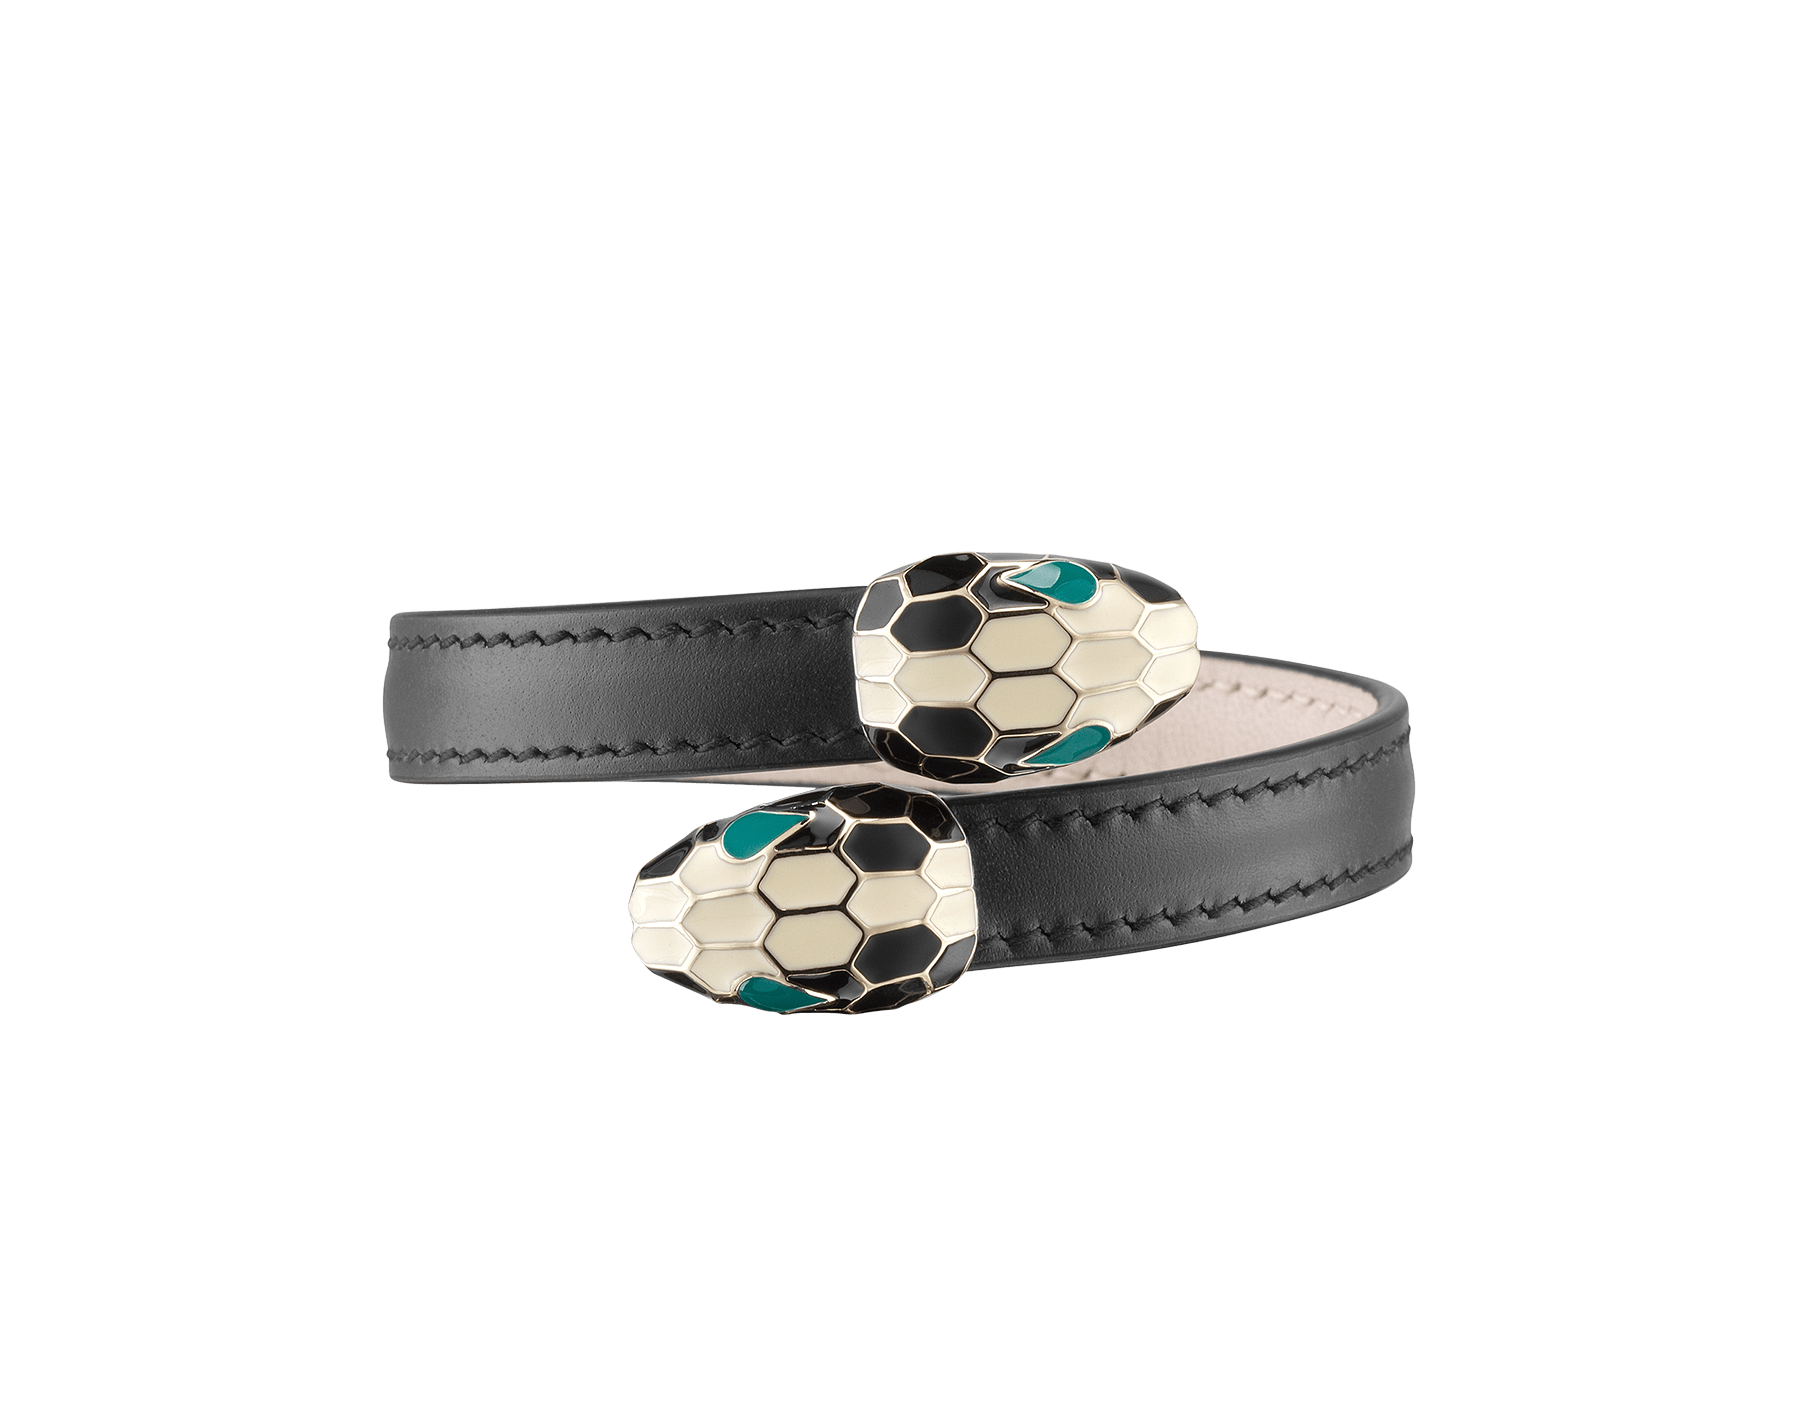 Serpenti Forever soft bangle bracelet in black calf leather, with brass light gold plated hardware. Iconic contraire snakehead décor in black and white enamel, with green enamel eyes. SerpSoftContr-CL-B image 1